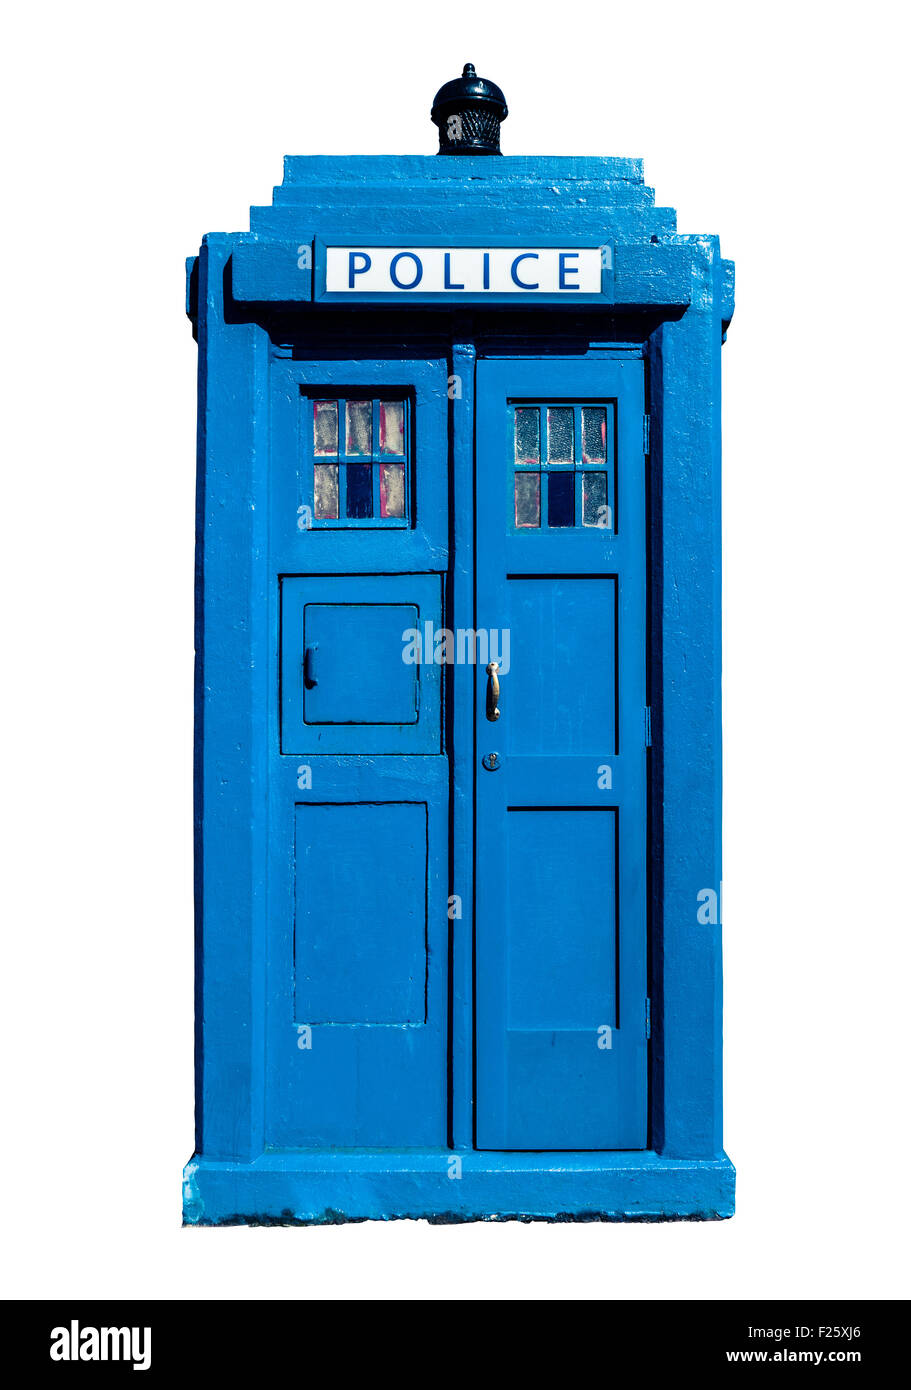 Isolation Of A Traditional Blue British Police Box - Stock Image